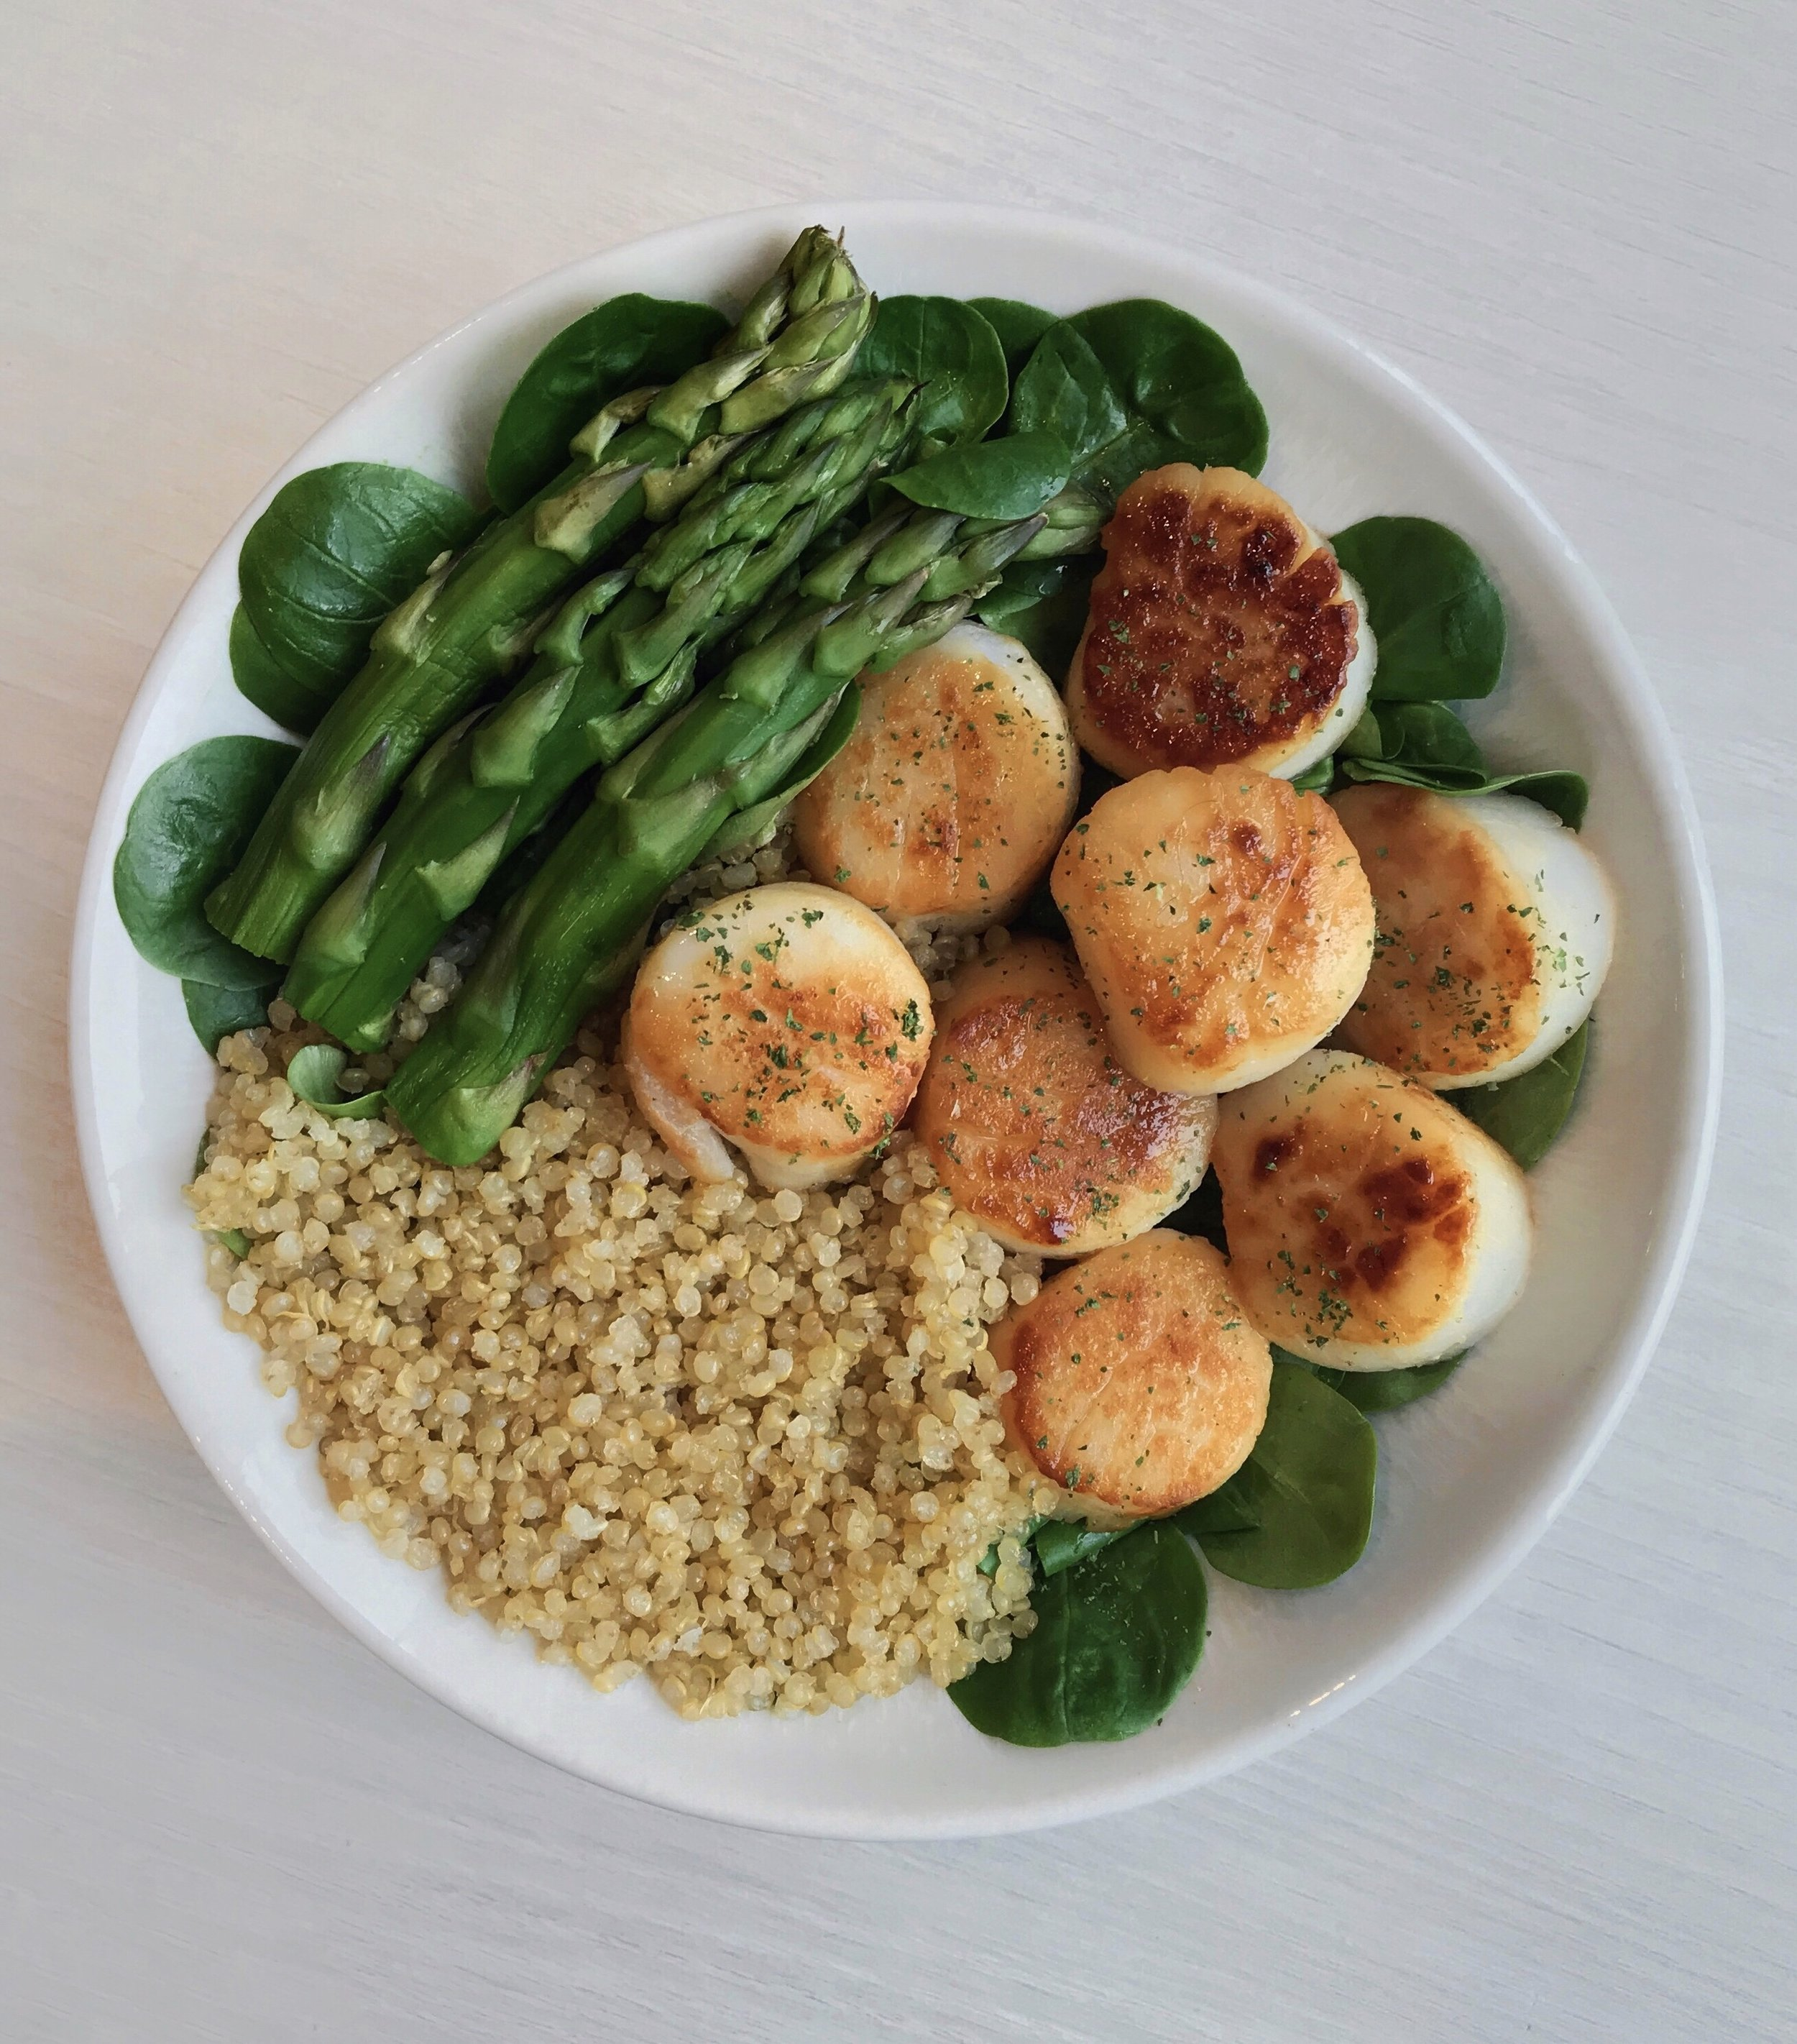 Grilled Scallops with Quinoa & Greens - Grilled scallops (cooked with @terradelyssa_frolive oil for a few minutes in the pan) + steamed asparagus +@bjorgofficielwhite quinoa + salad + lemon + herbs